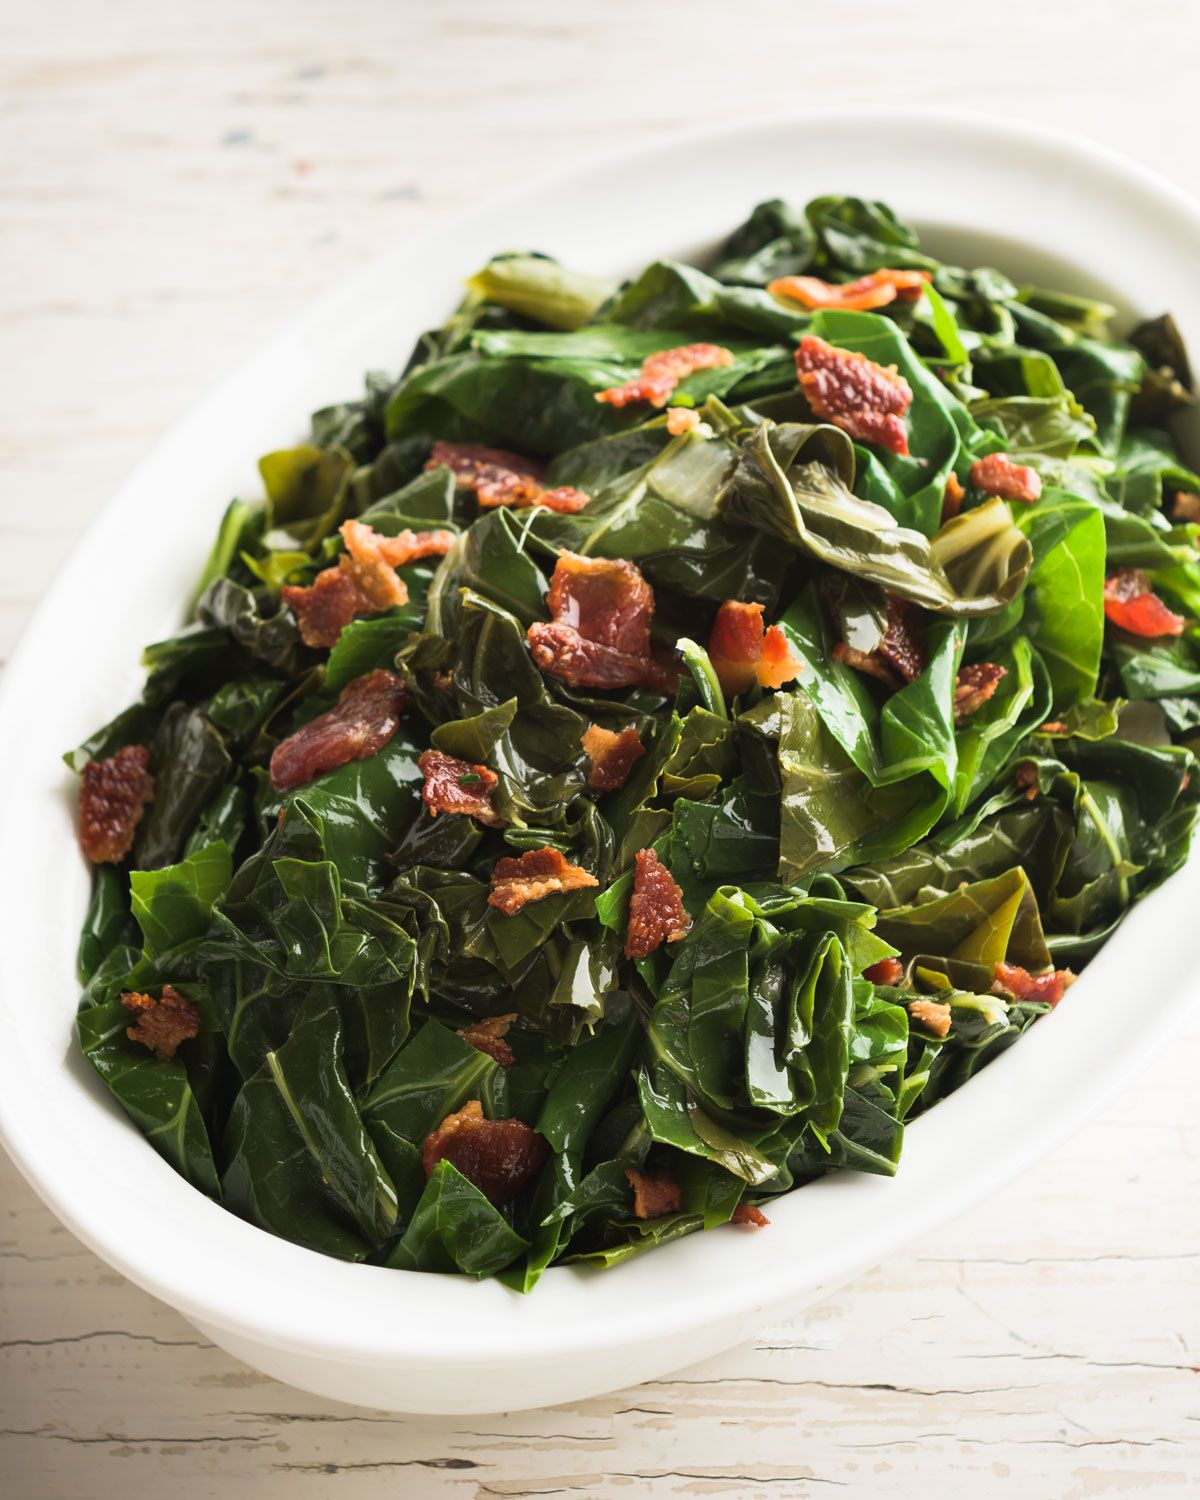 A plate of collard greens that Neiman Marcus sold last holiday season for $66.